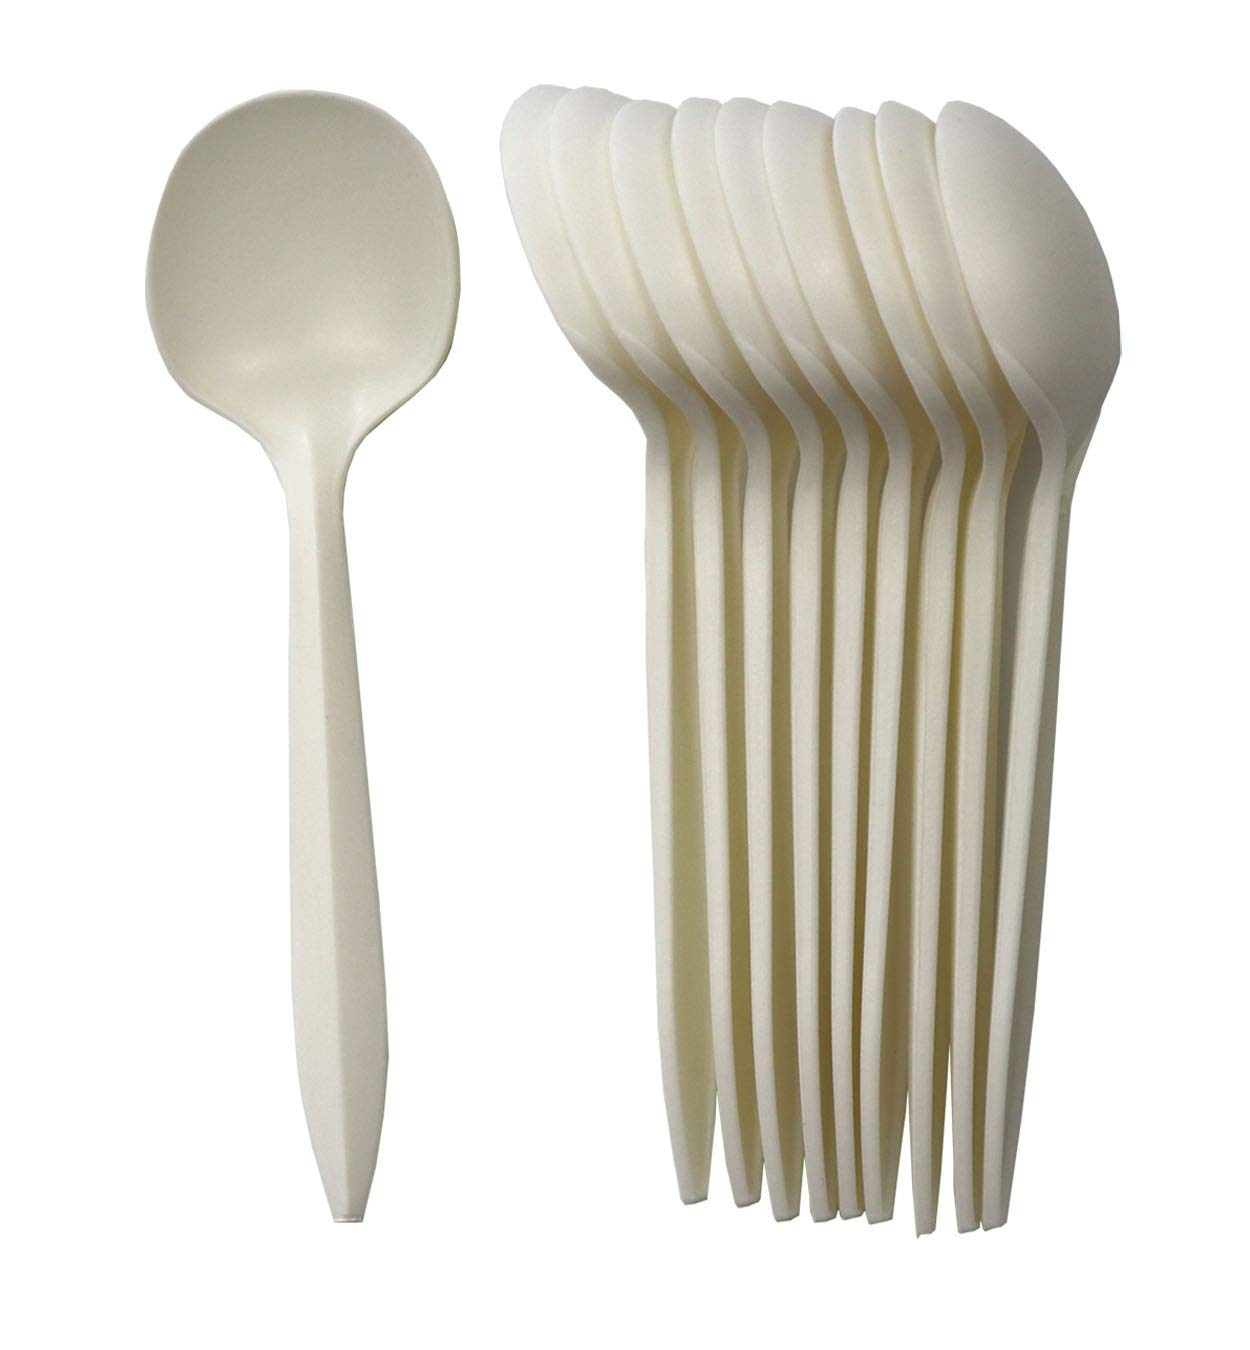 GreenWorks Eco-friendly Plant Starch Disposable Cutlery,1000 ct Cornstarch Biodegradable Soup Spoons by Greenworks